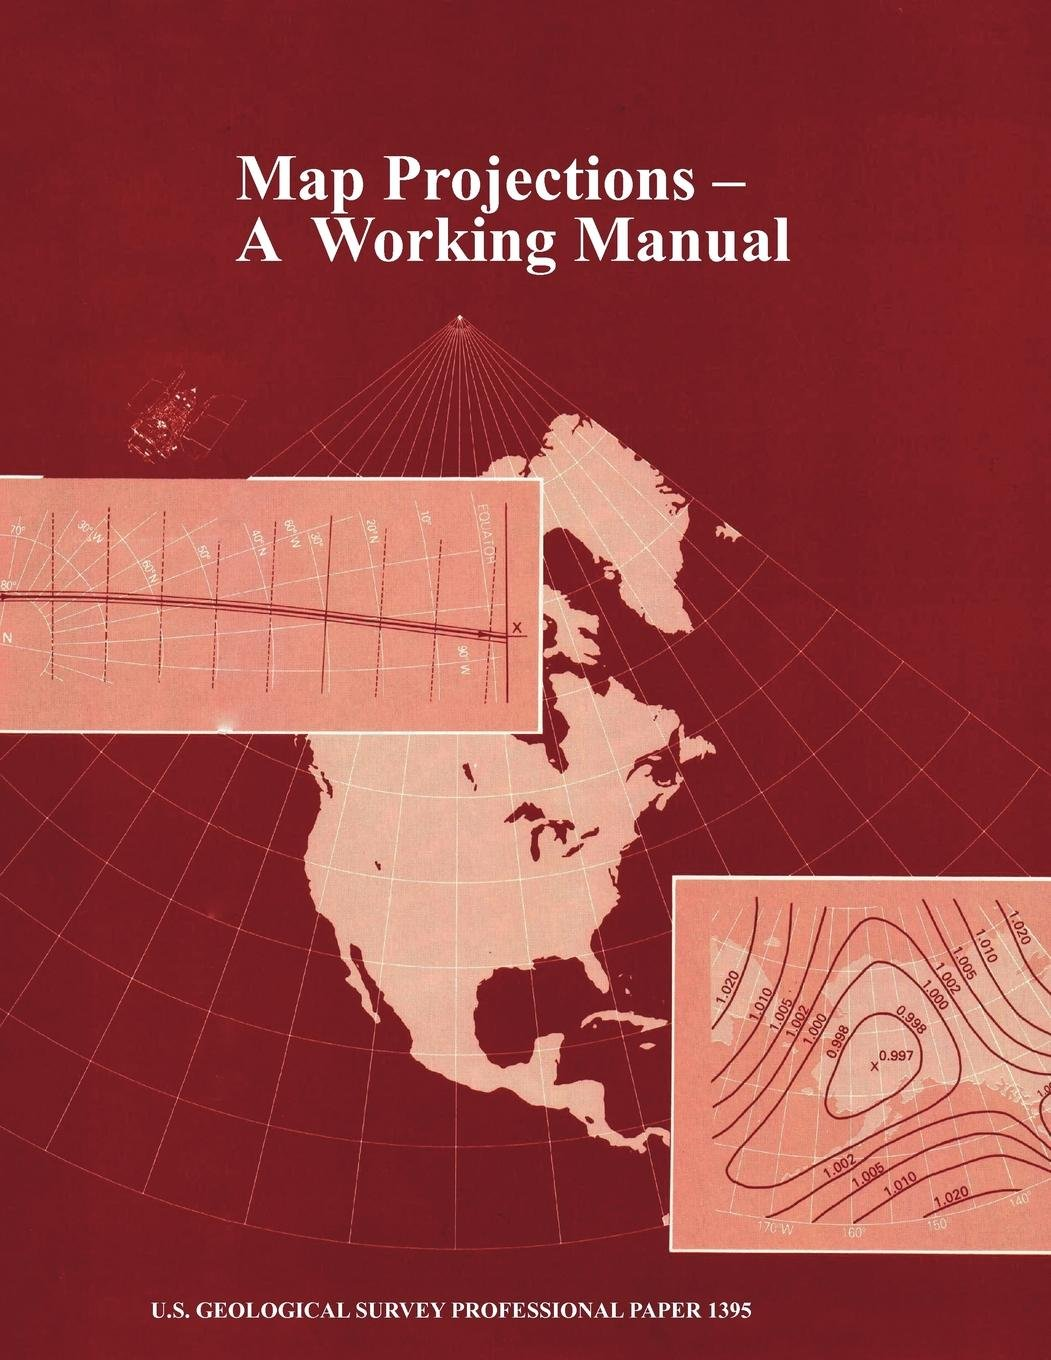 Map Projections: A Working Manual (U.S. Geological Survey ... on map making, map of australia, map of north america, map of central america, map sea level history, map legend, map with latitude and longitude globe, map of italy, map activities for fifth grade, map scale, map symbols, map with coordinates, map of island with contour lines, map mercator, map icon, map key, map types, map distortion, map of south america, map raster data,